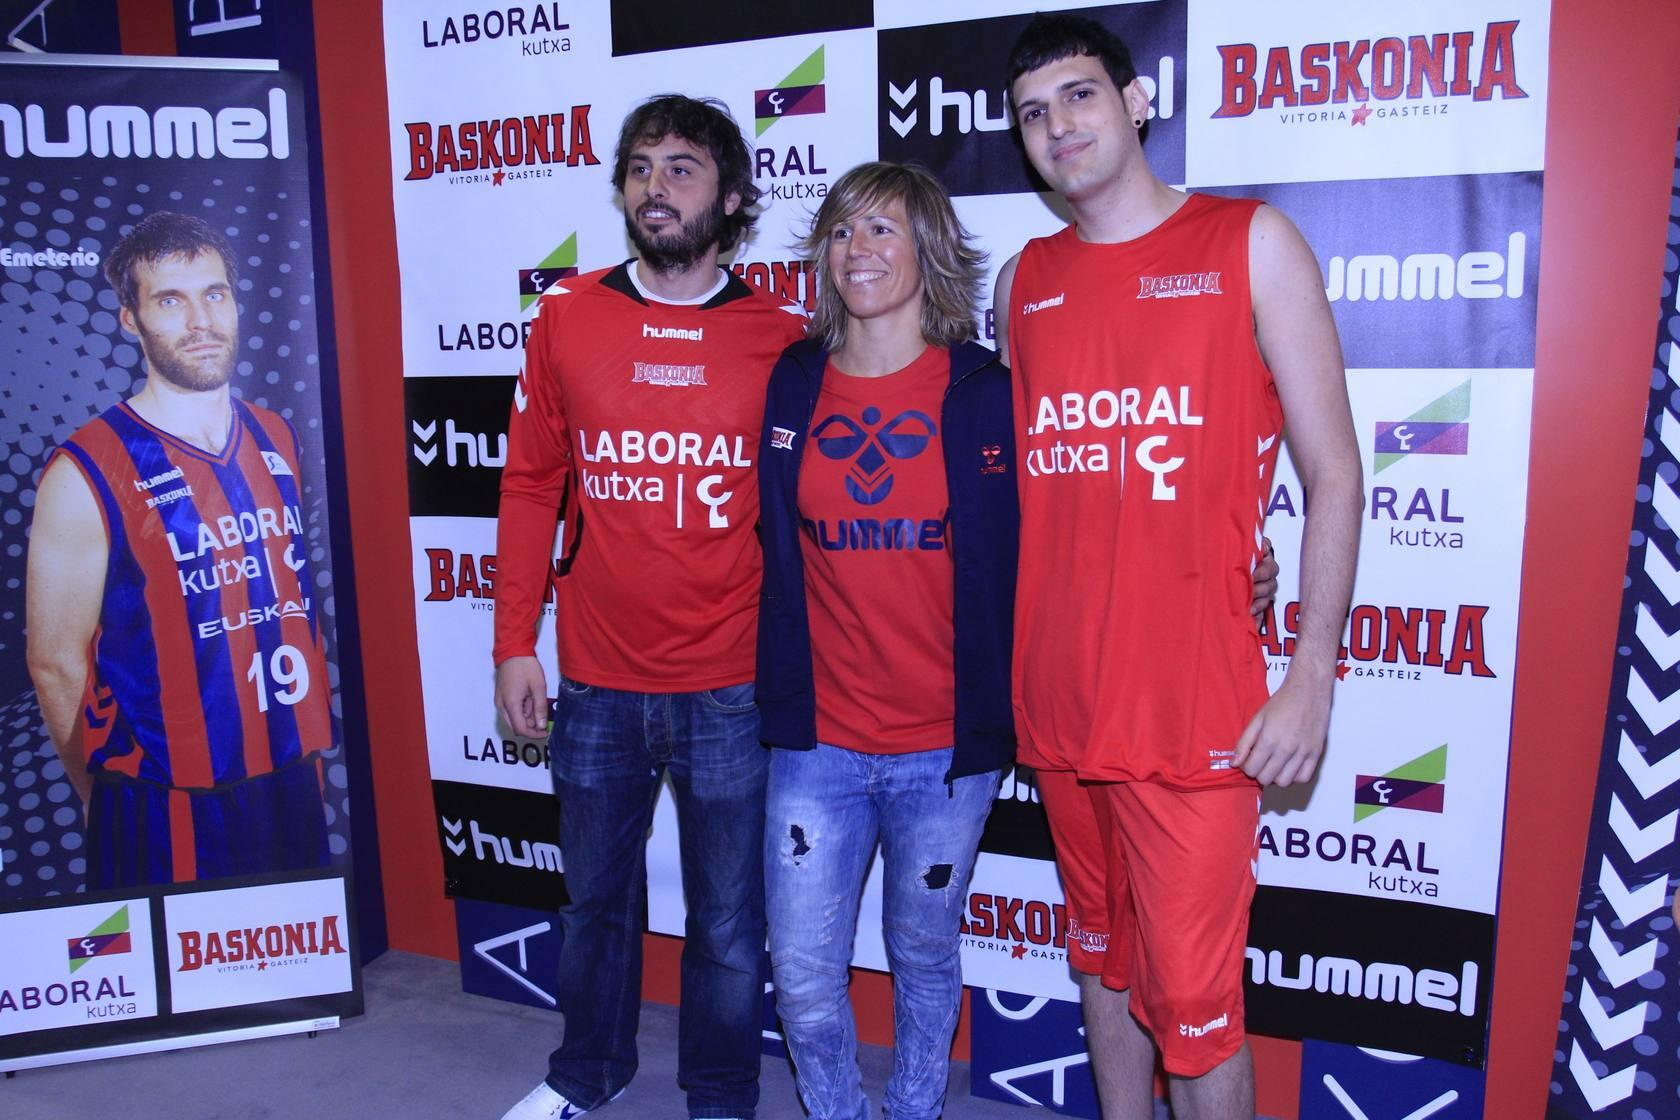 Las nuevas camisetas del Baskonia